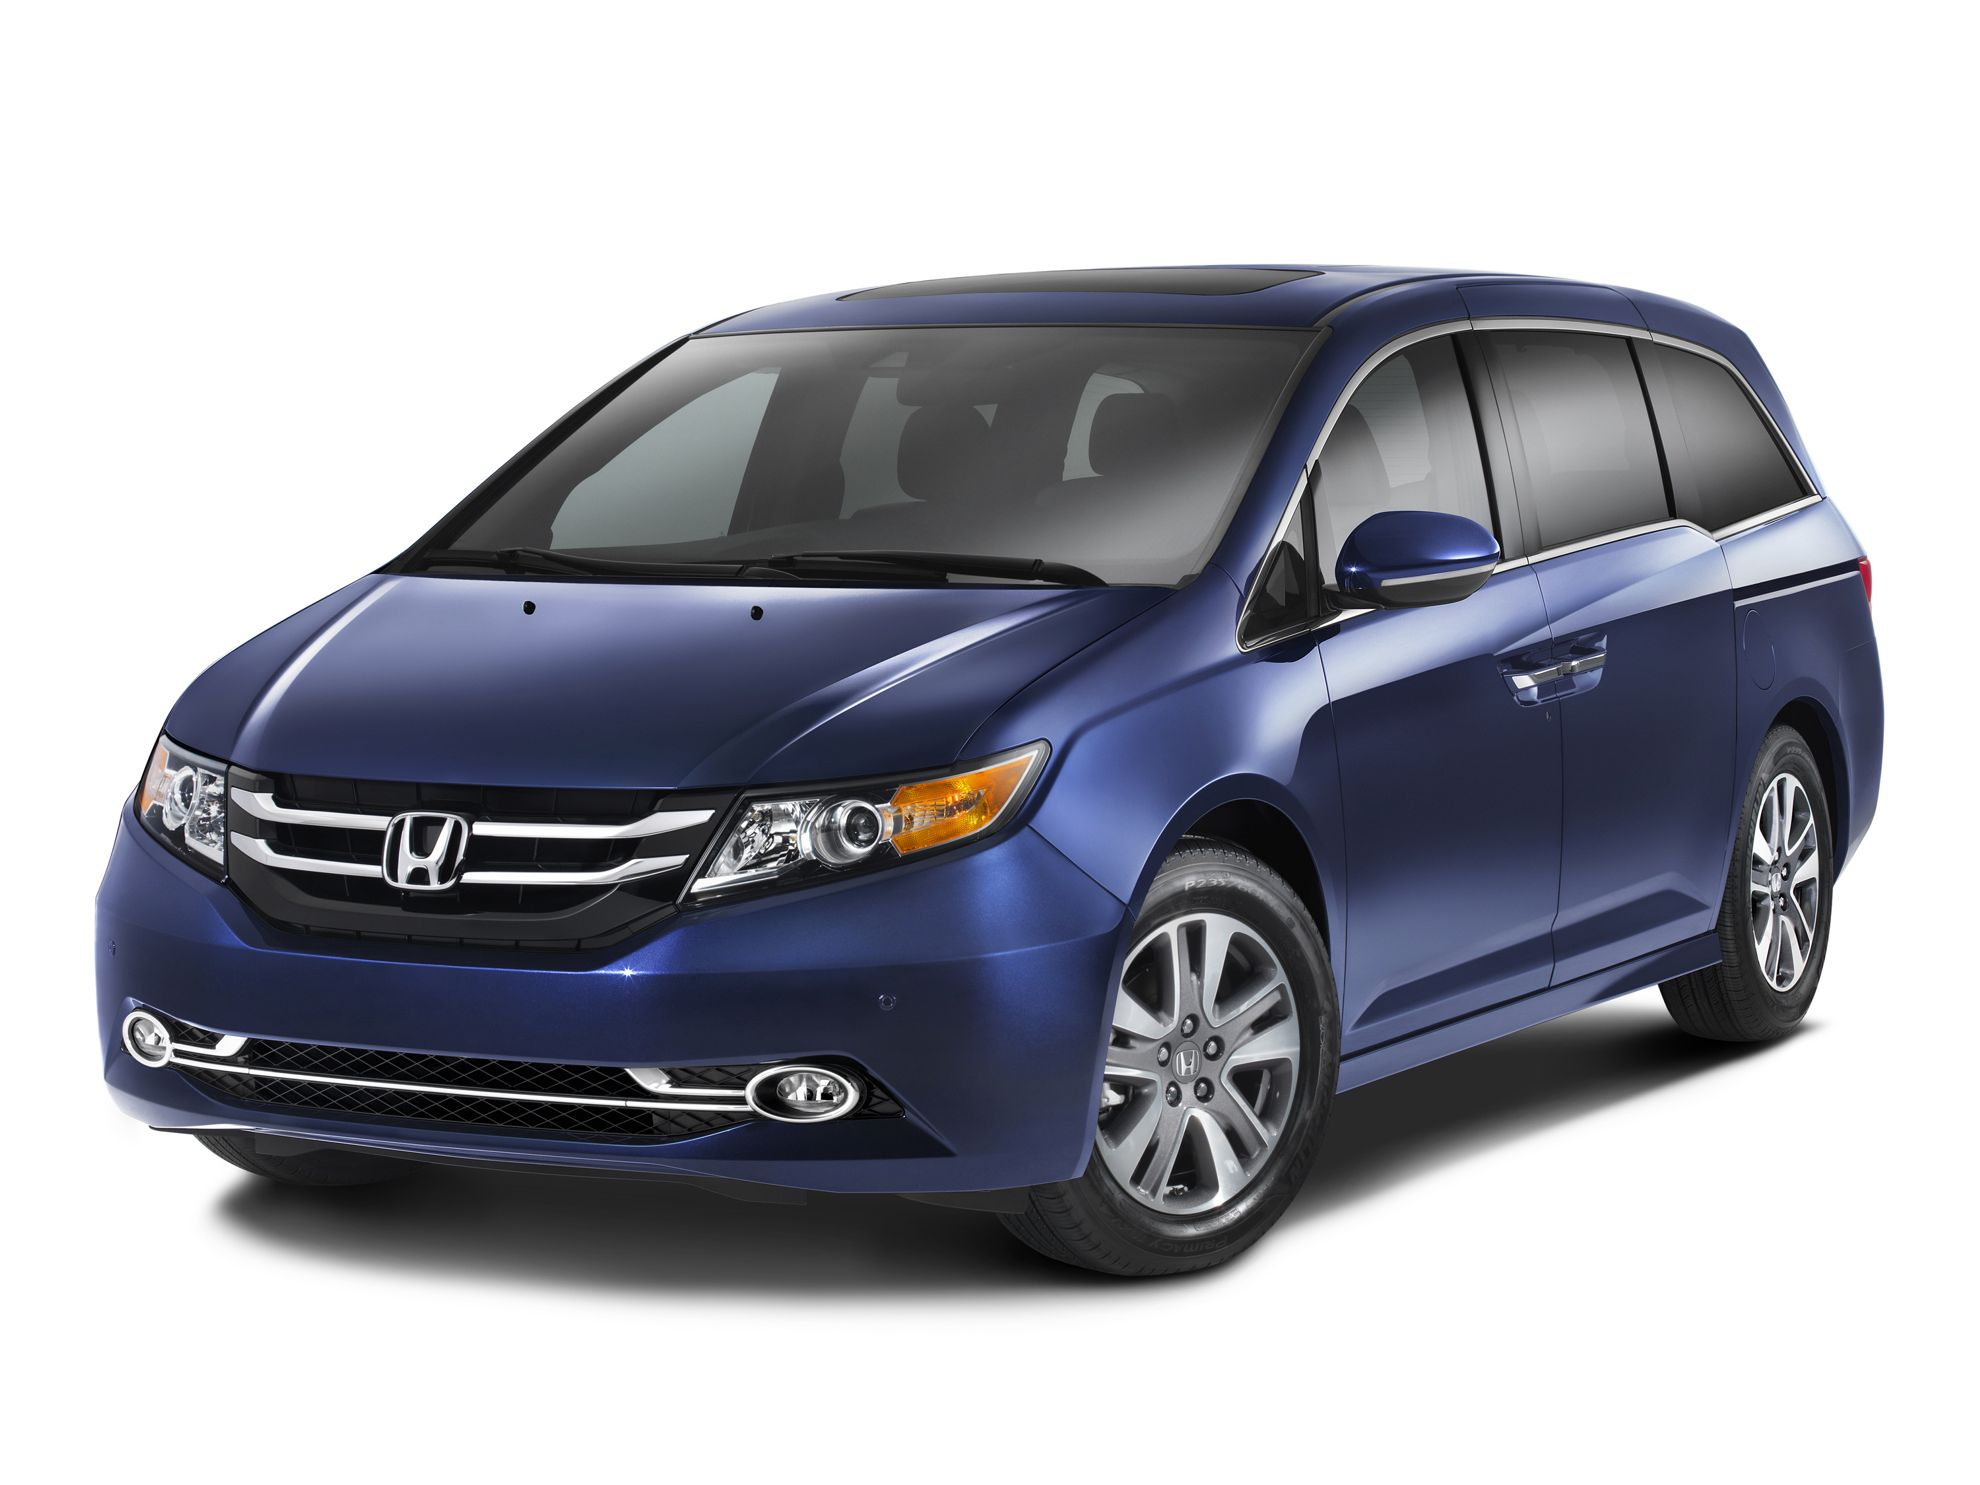 TORRANCE Calif Feb 11 2014 Americas Most Popular Minivan1 The Honda Odyssey Has Received A 5 Star Overall Vehicle Score Top